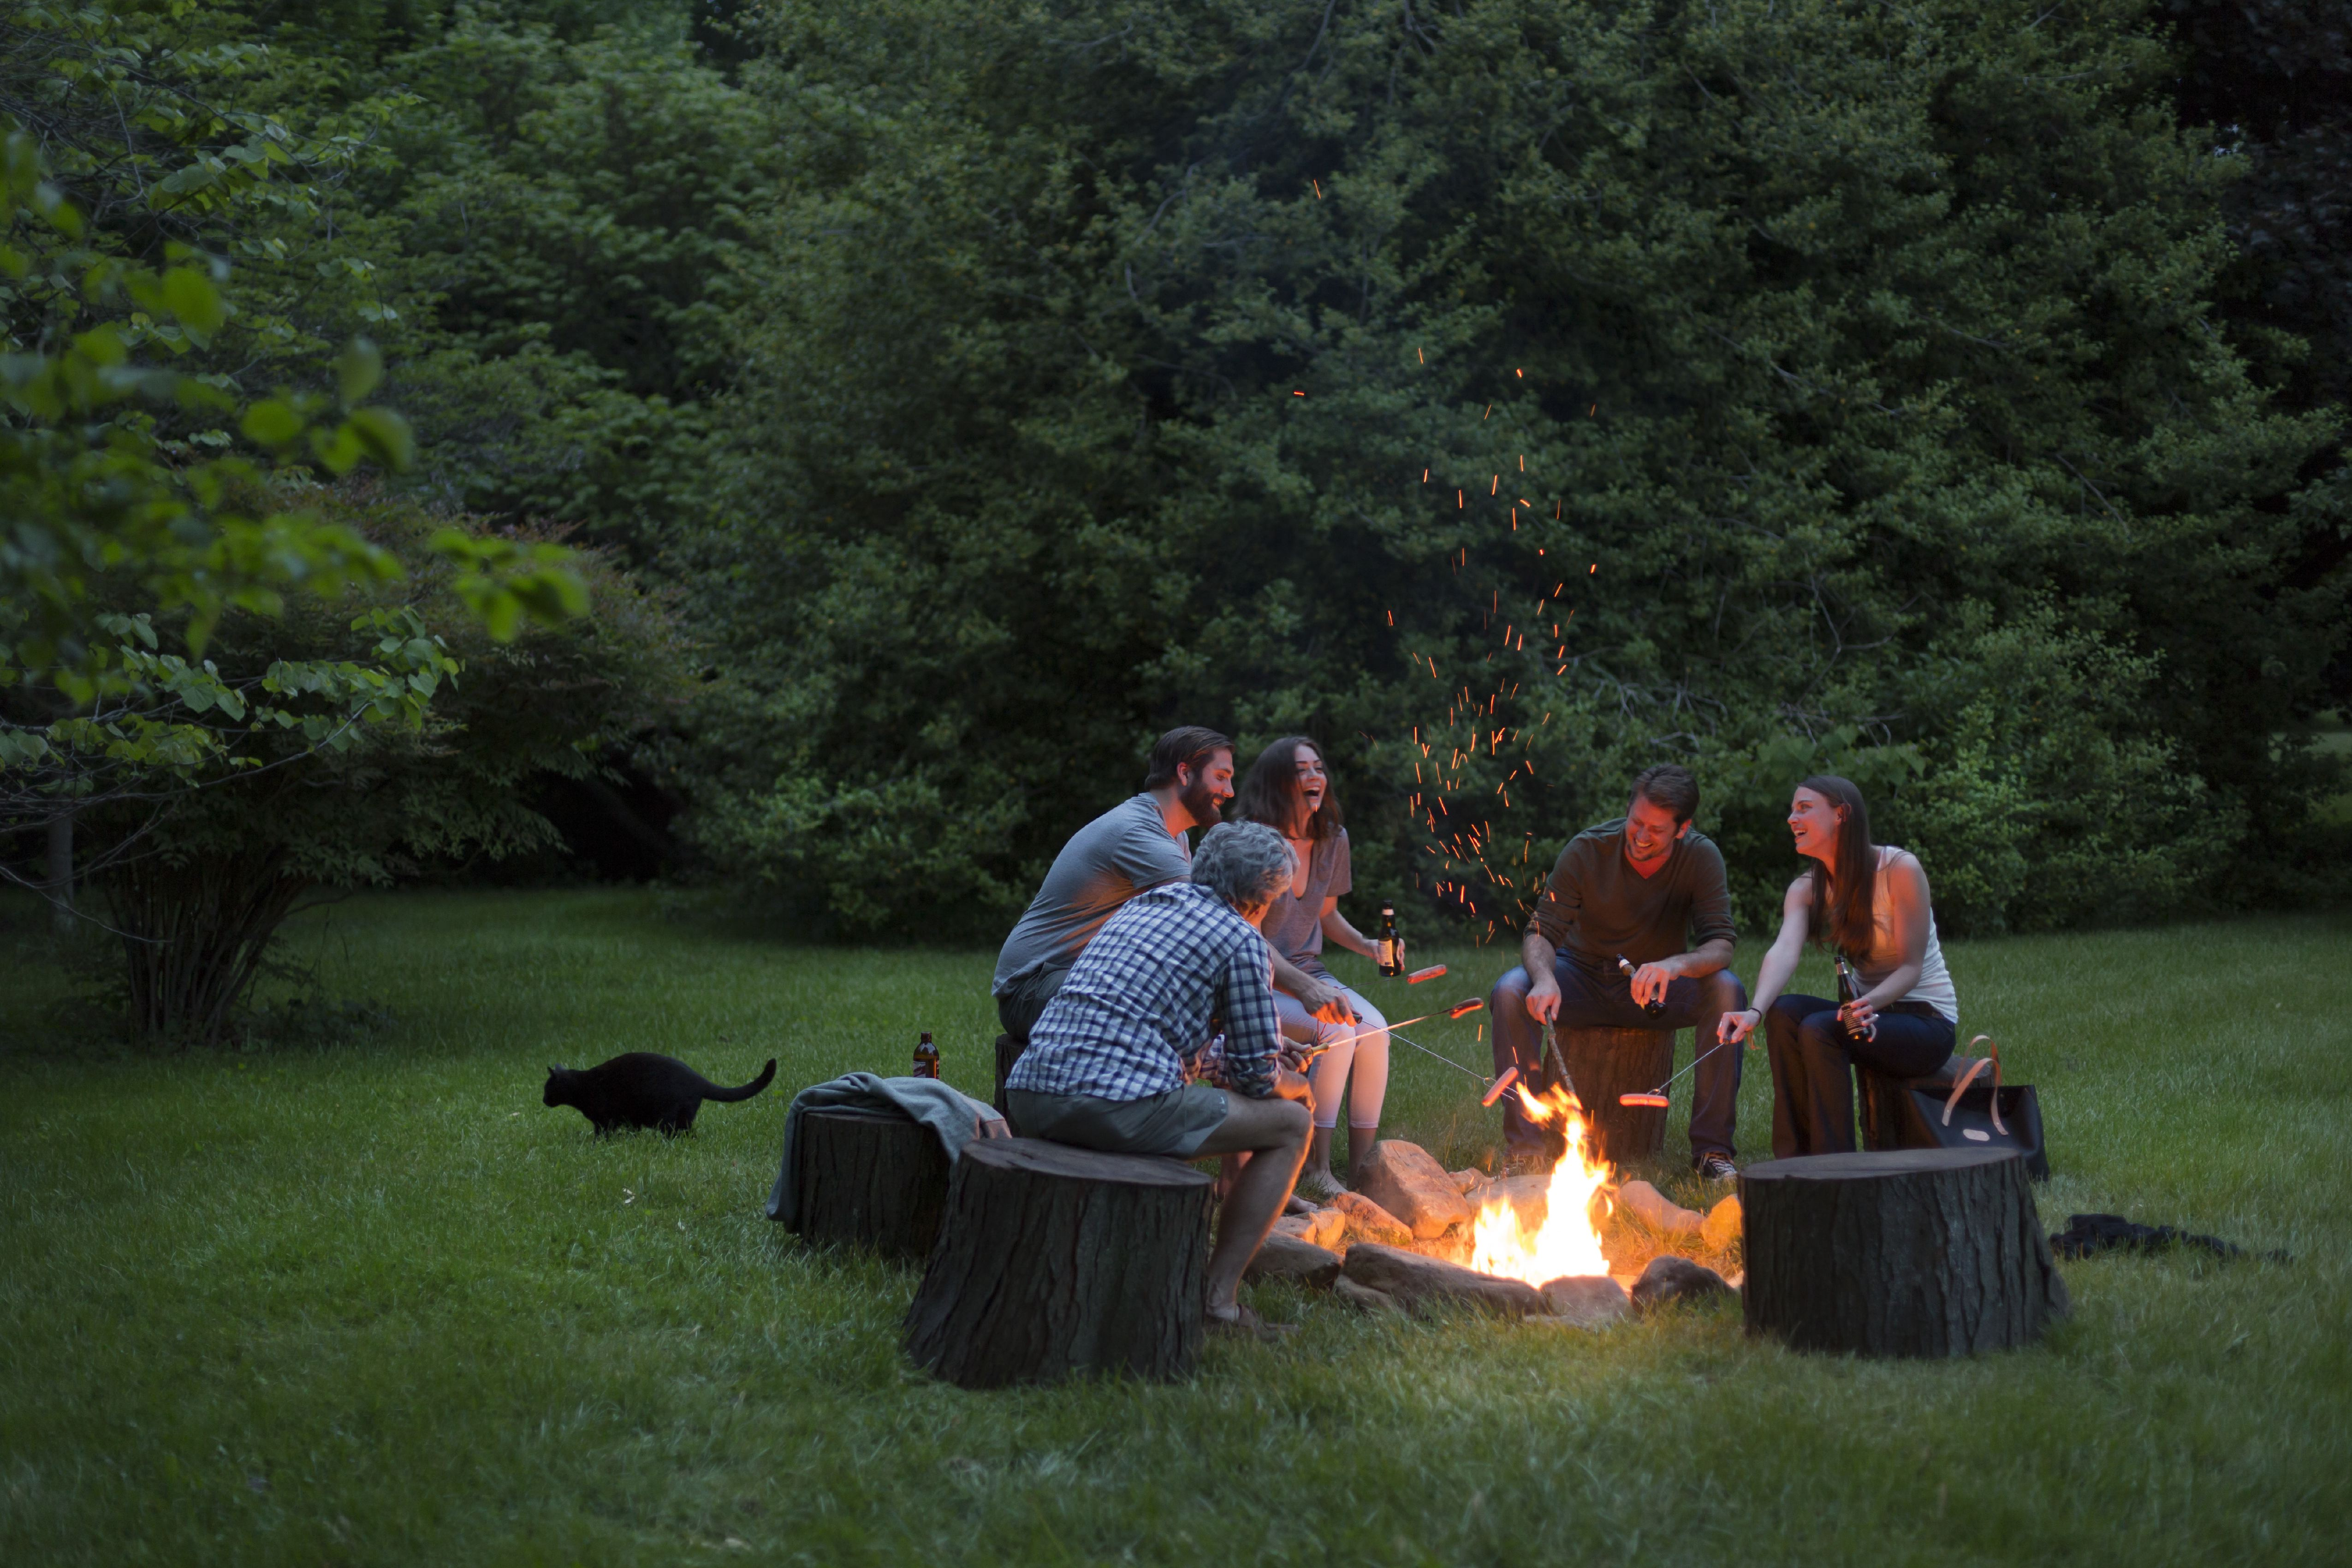 Group of adults around a fire pit, Brampton Inn, Chestertown, Maryland, USA. (Photo by: Jumping Rocks/Universal Images Group via Getty Images)